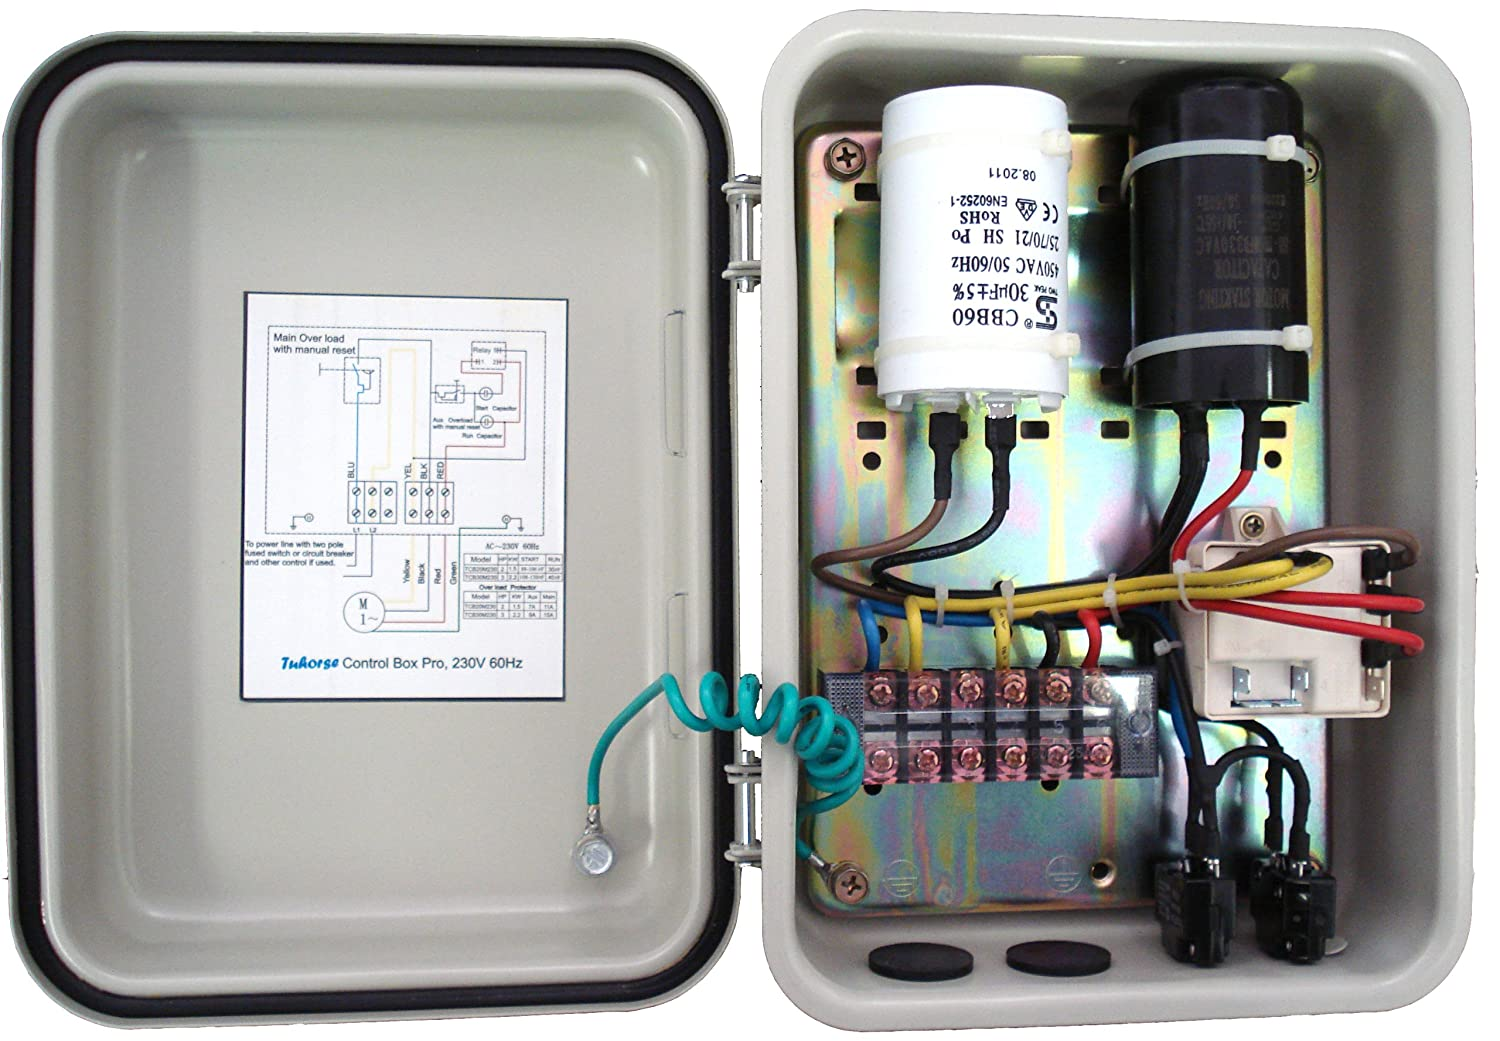 Grundfos Submersible Pump Control Box Wiring Diagram Along With